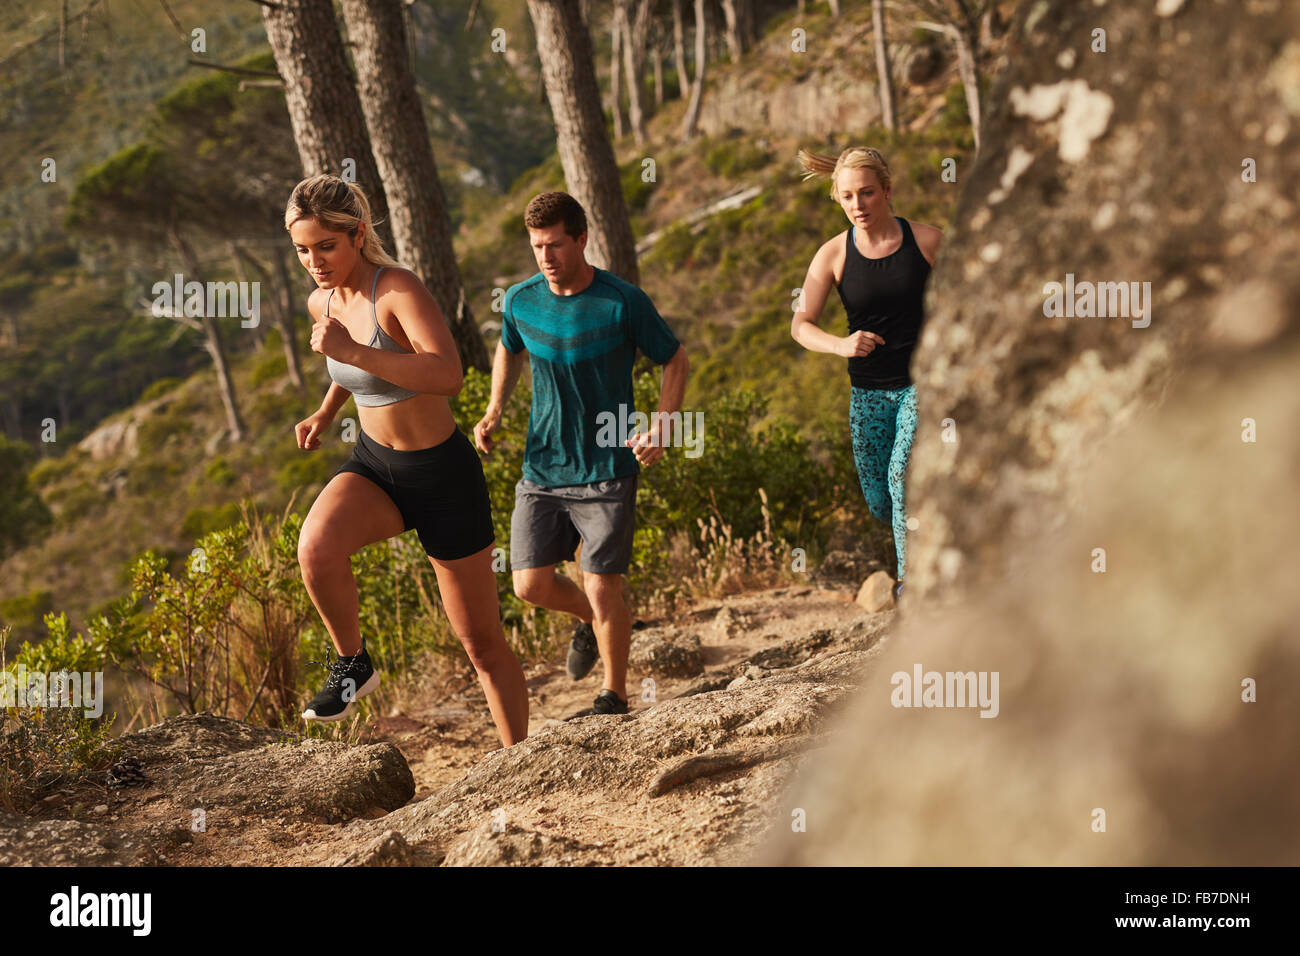 Group of runners running on rocks up a hill. Young people running cross country. - Stock Image